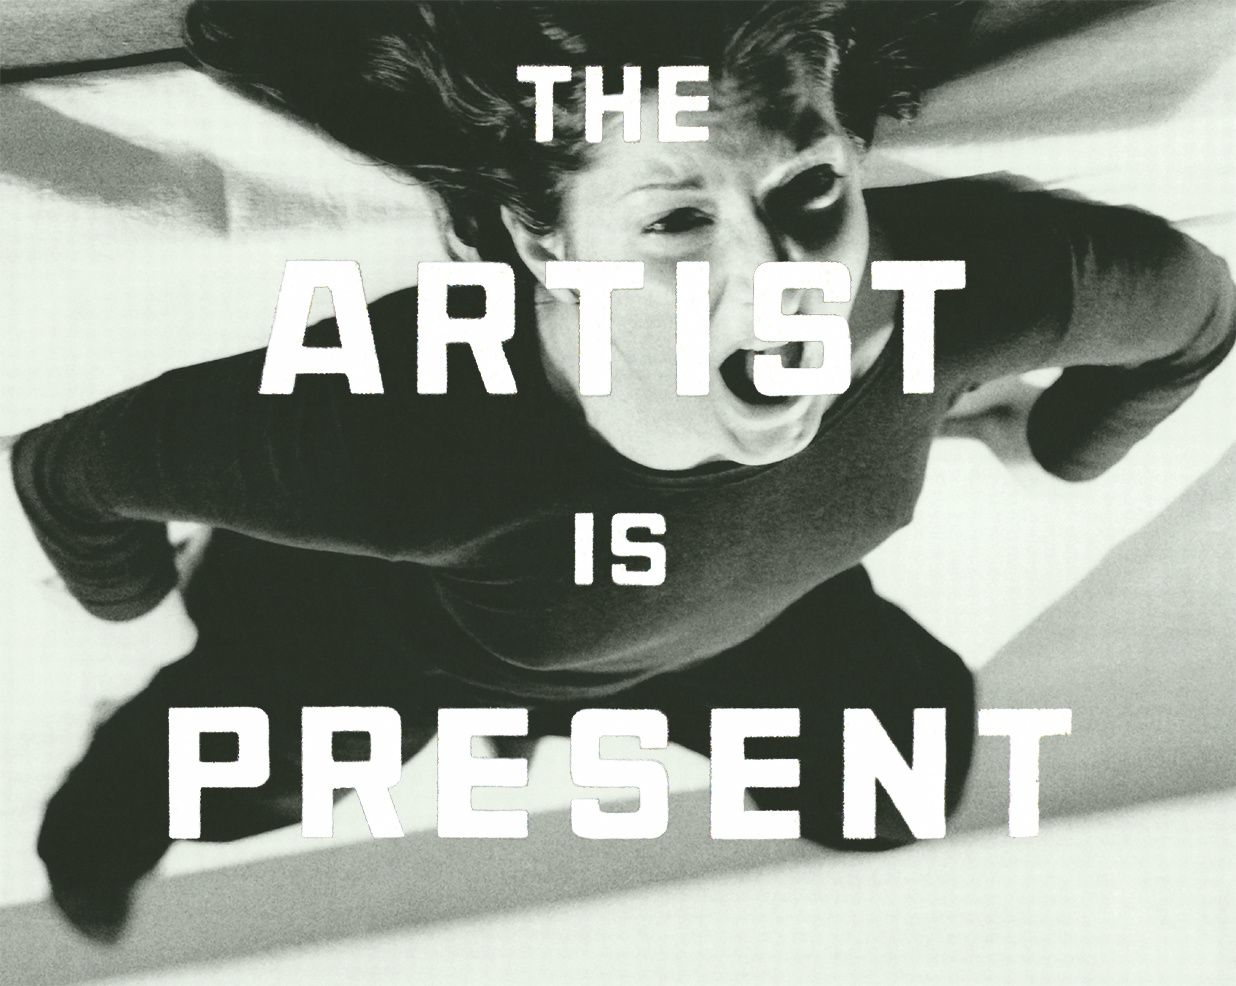 Marina-abramovic-Concentration-freeing-the-present.jpg